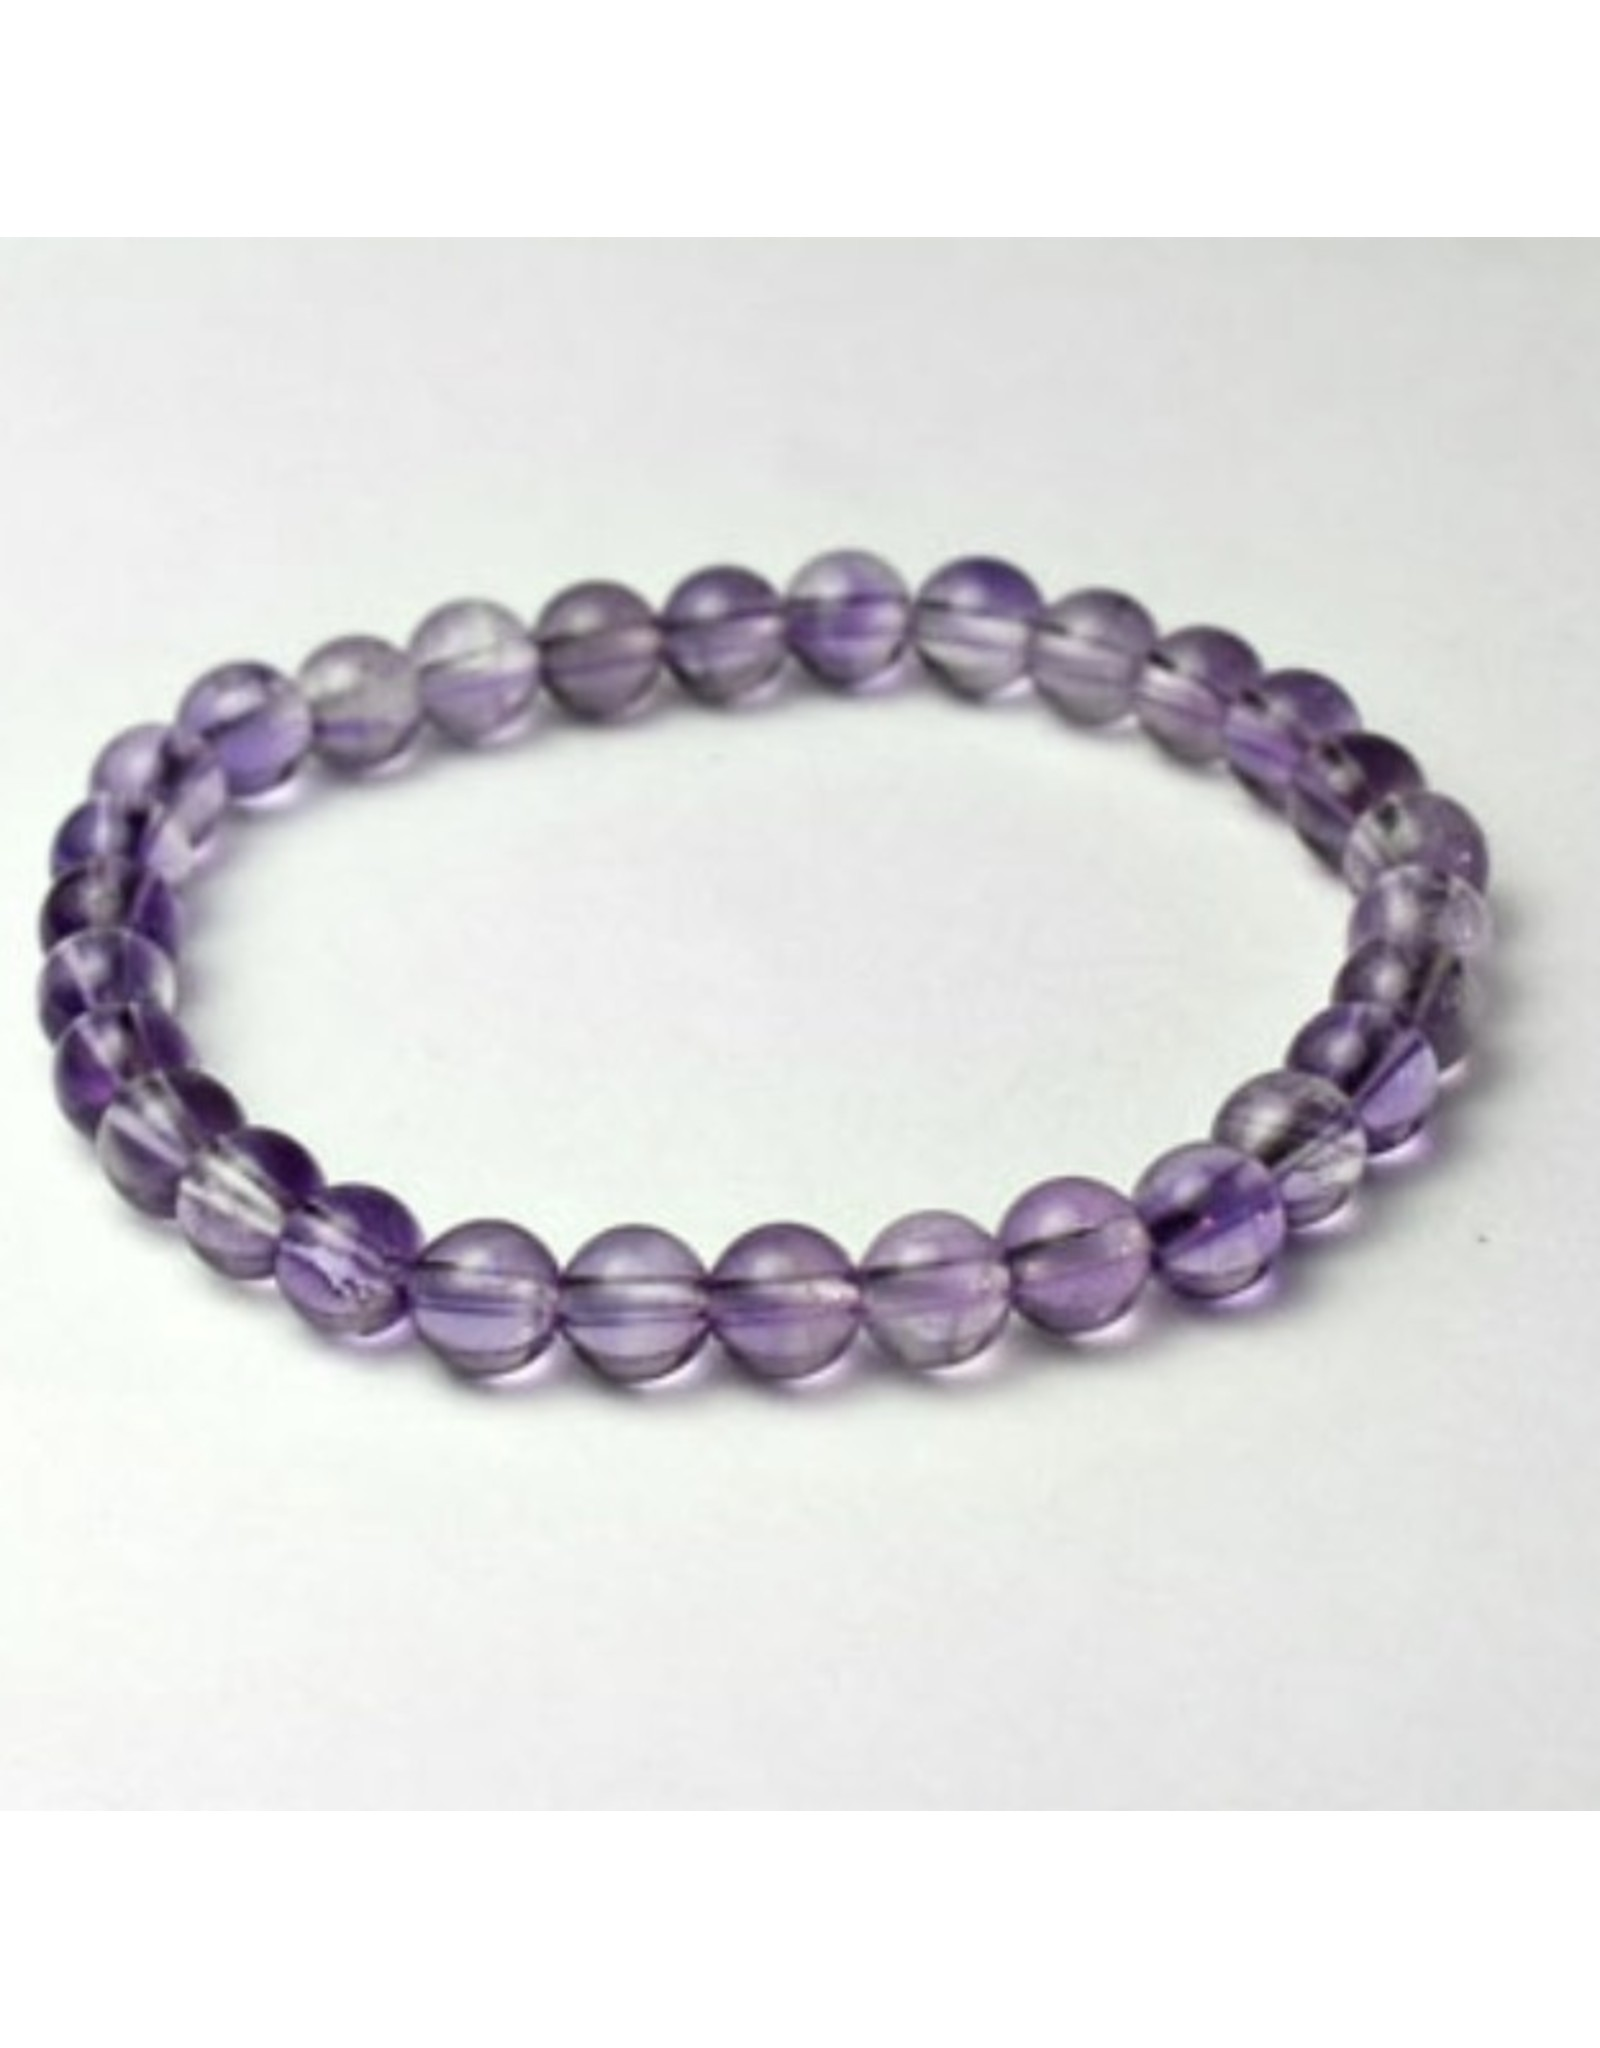 Children's Amethyst Power Bracelet